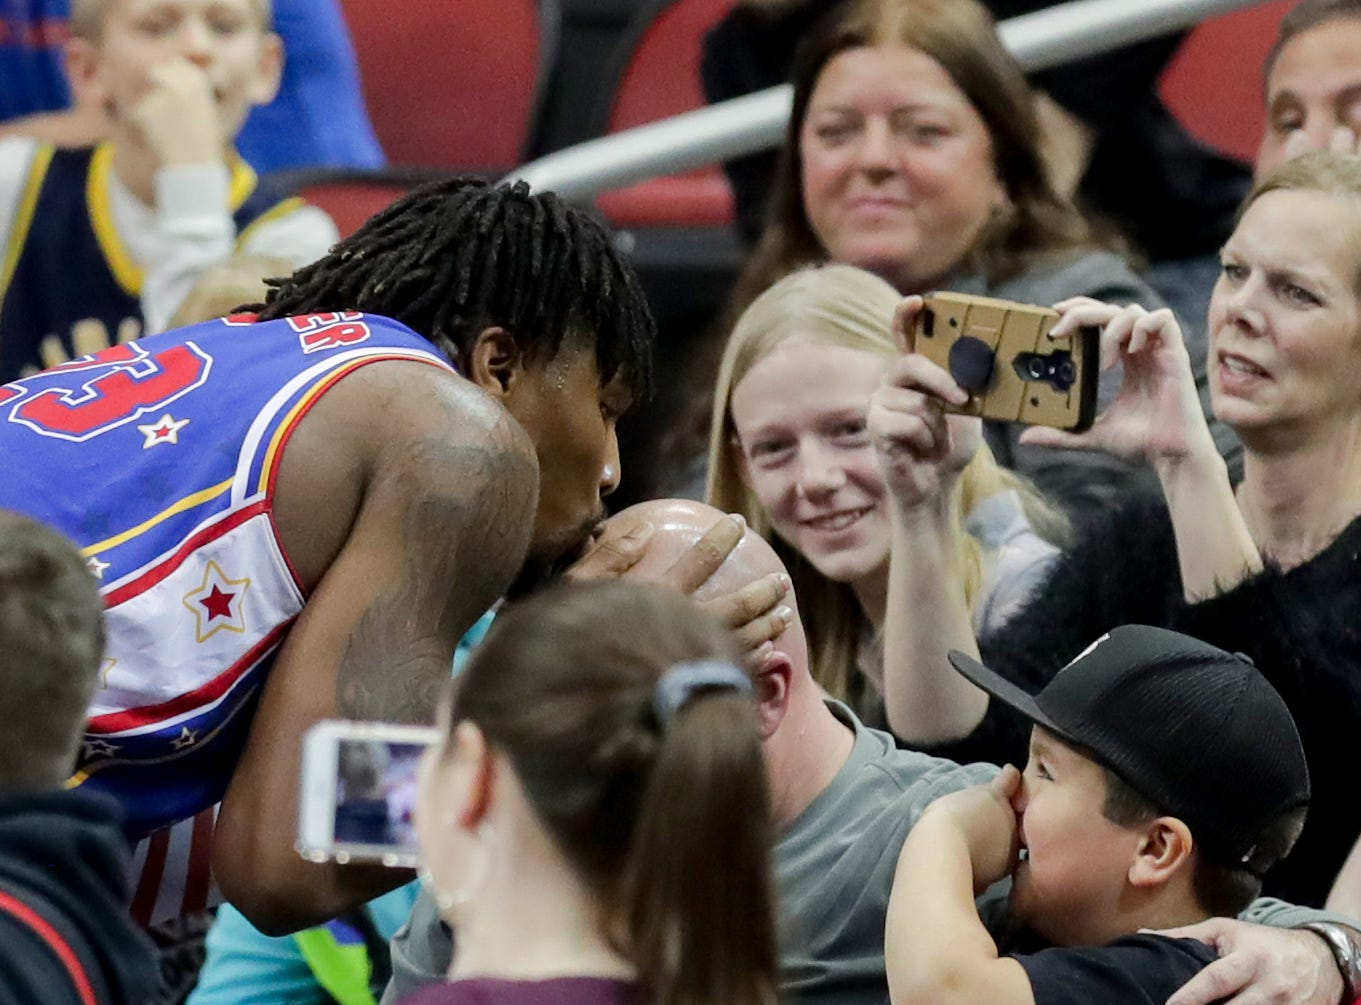 Harlem Globetrotters' Thunder kisses a bald head in the crowd.